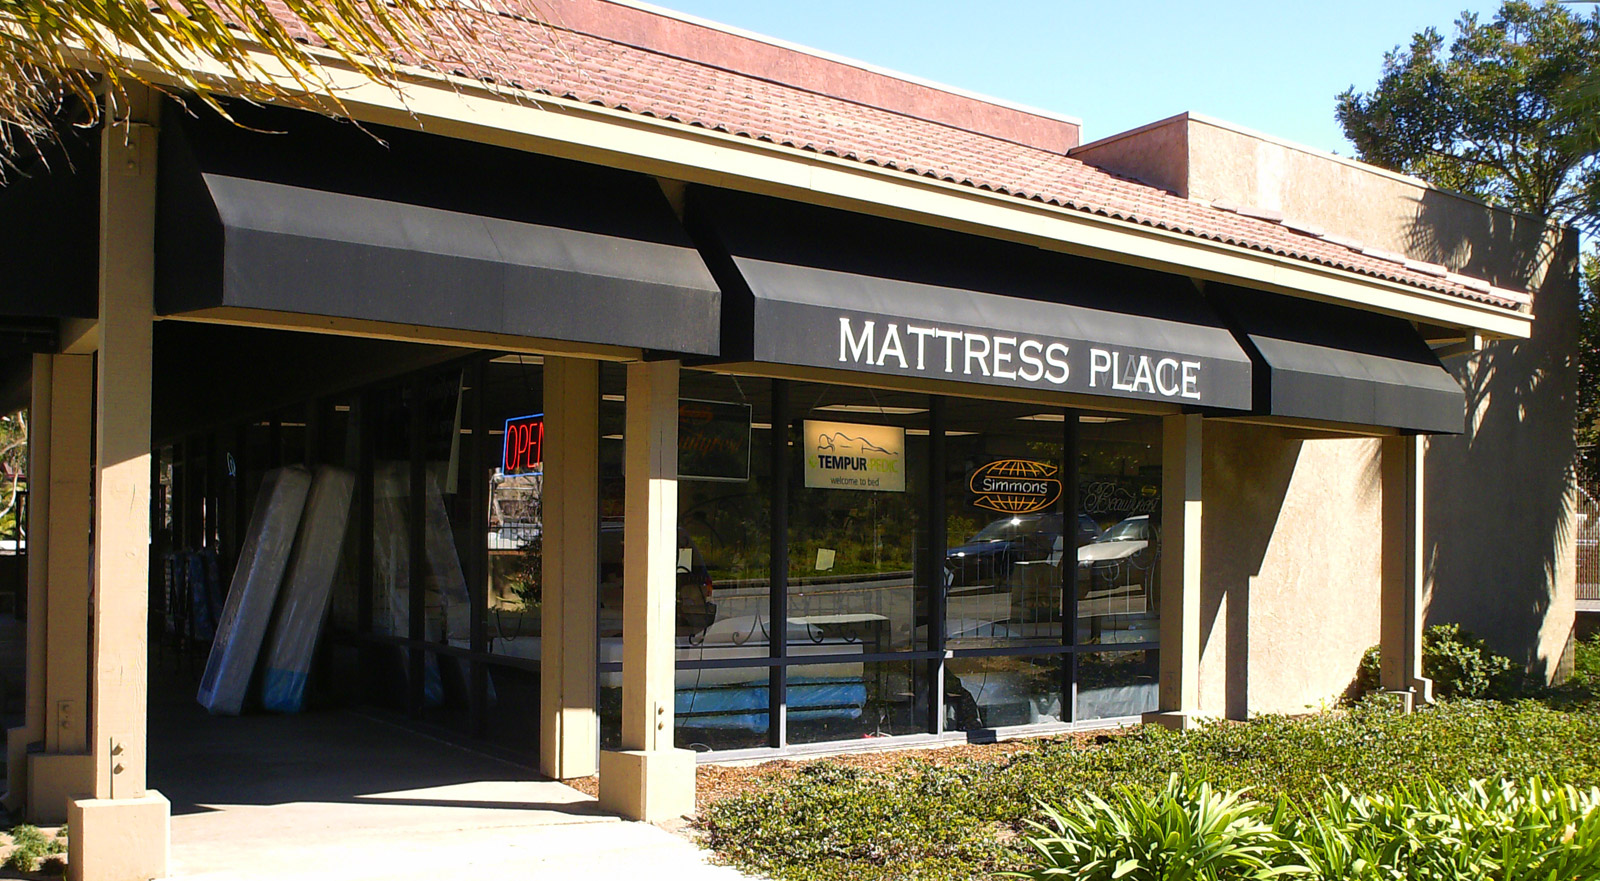 The Mattress Place storefront